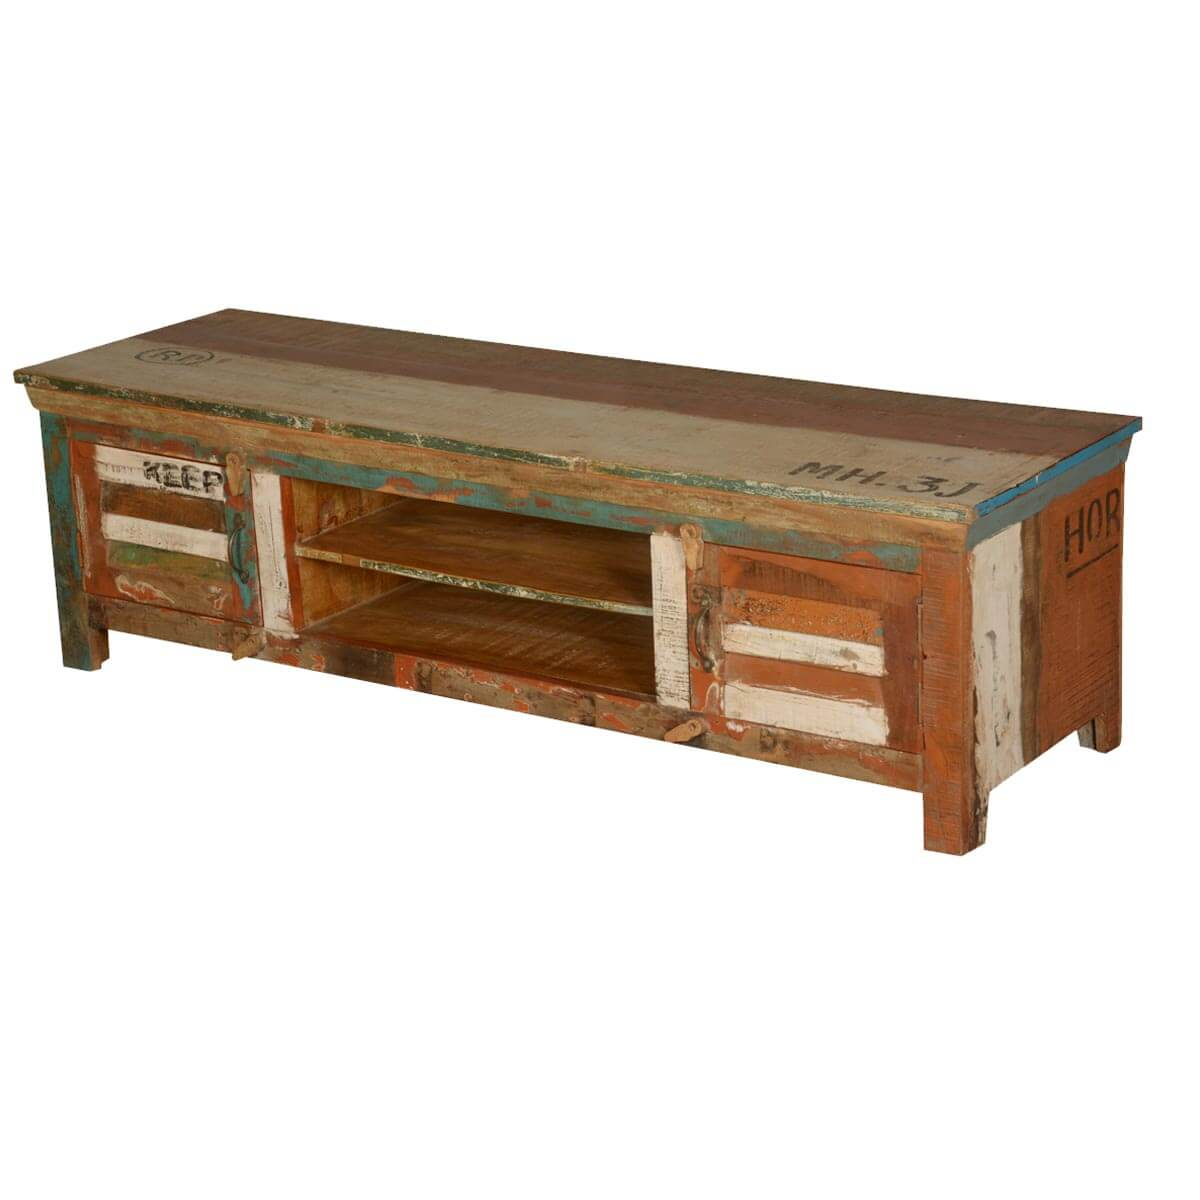 Reclaimed Media Cabinet Appalachian Rustic Shutter Doors Reclaimed Wood Tv Stand Media Console